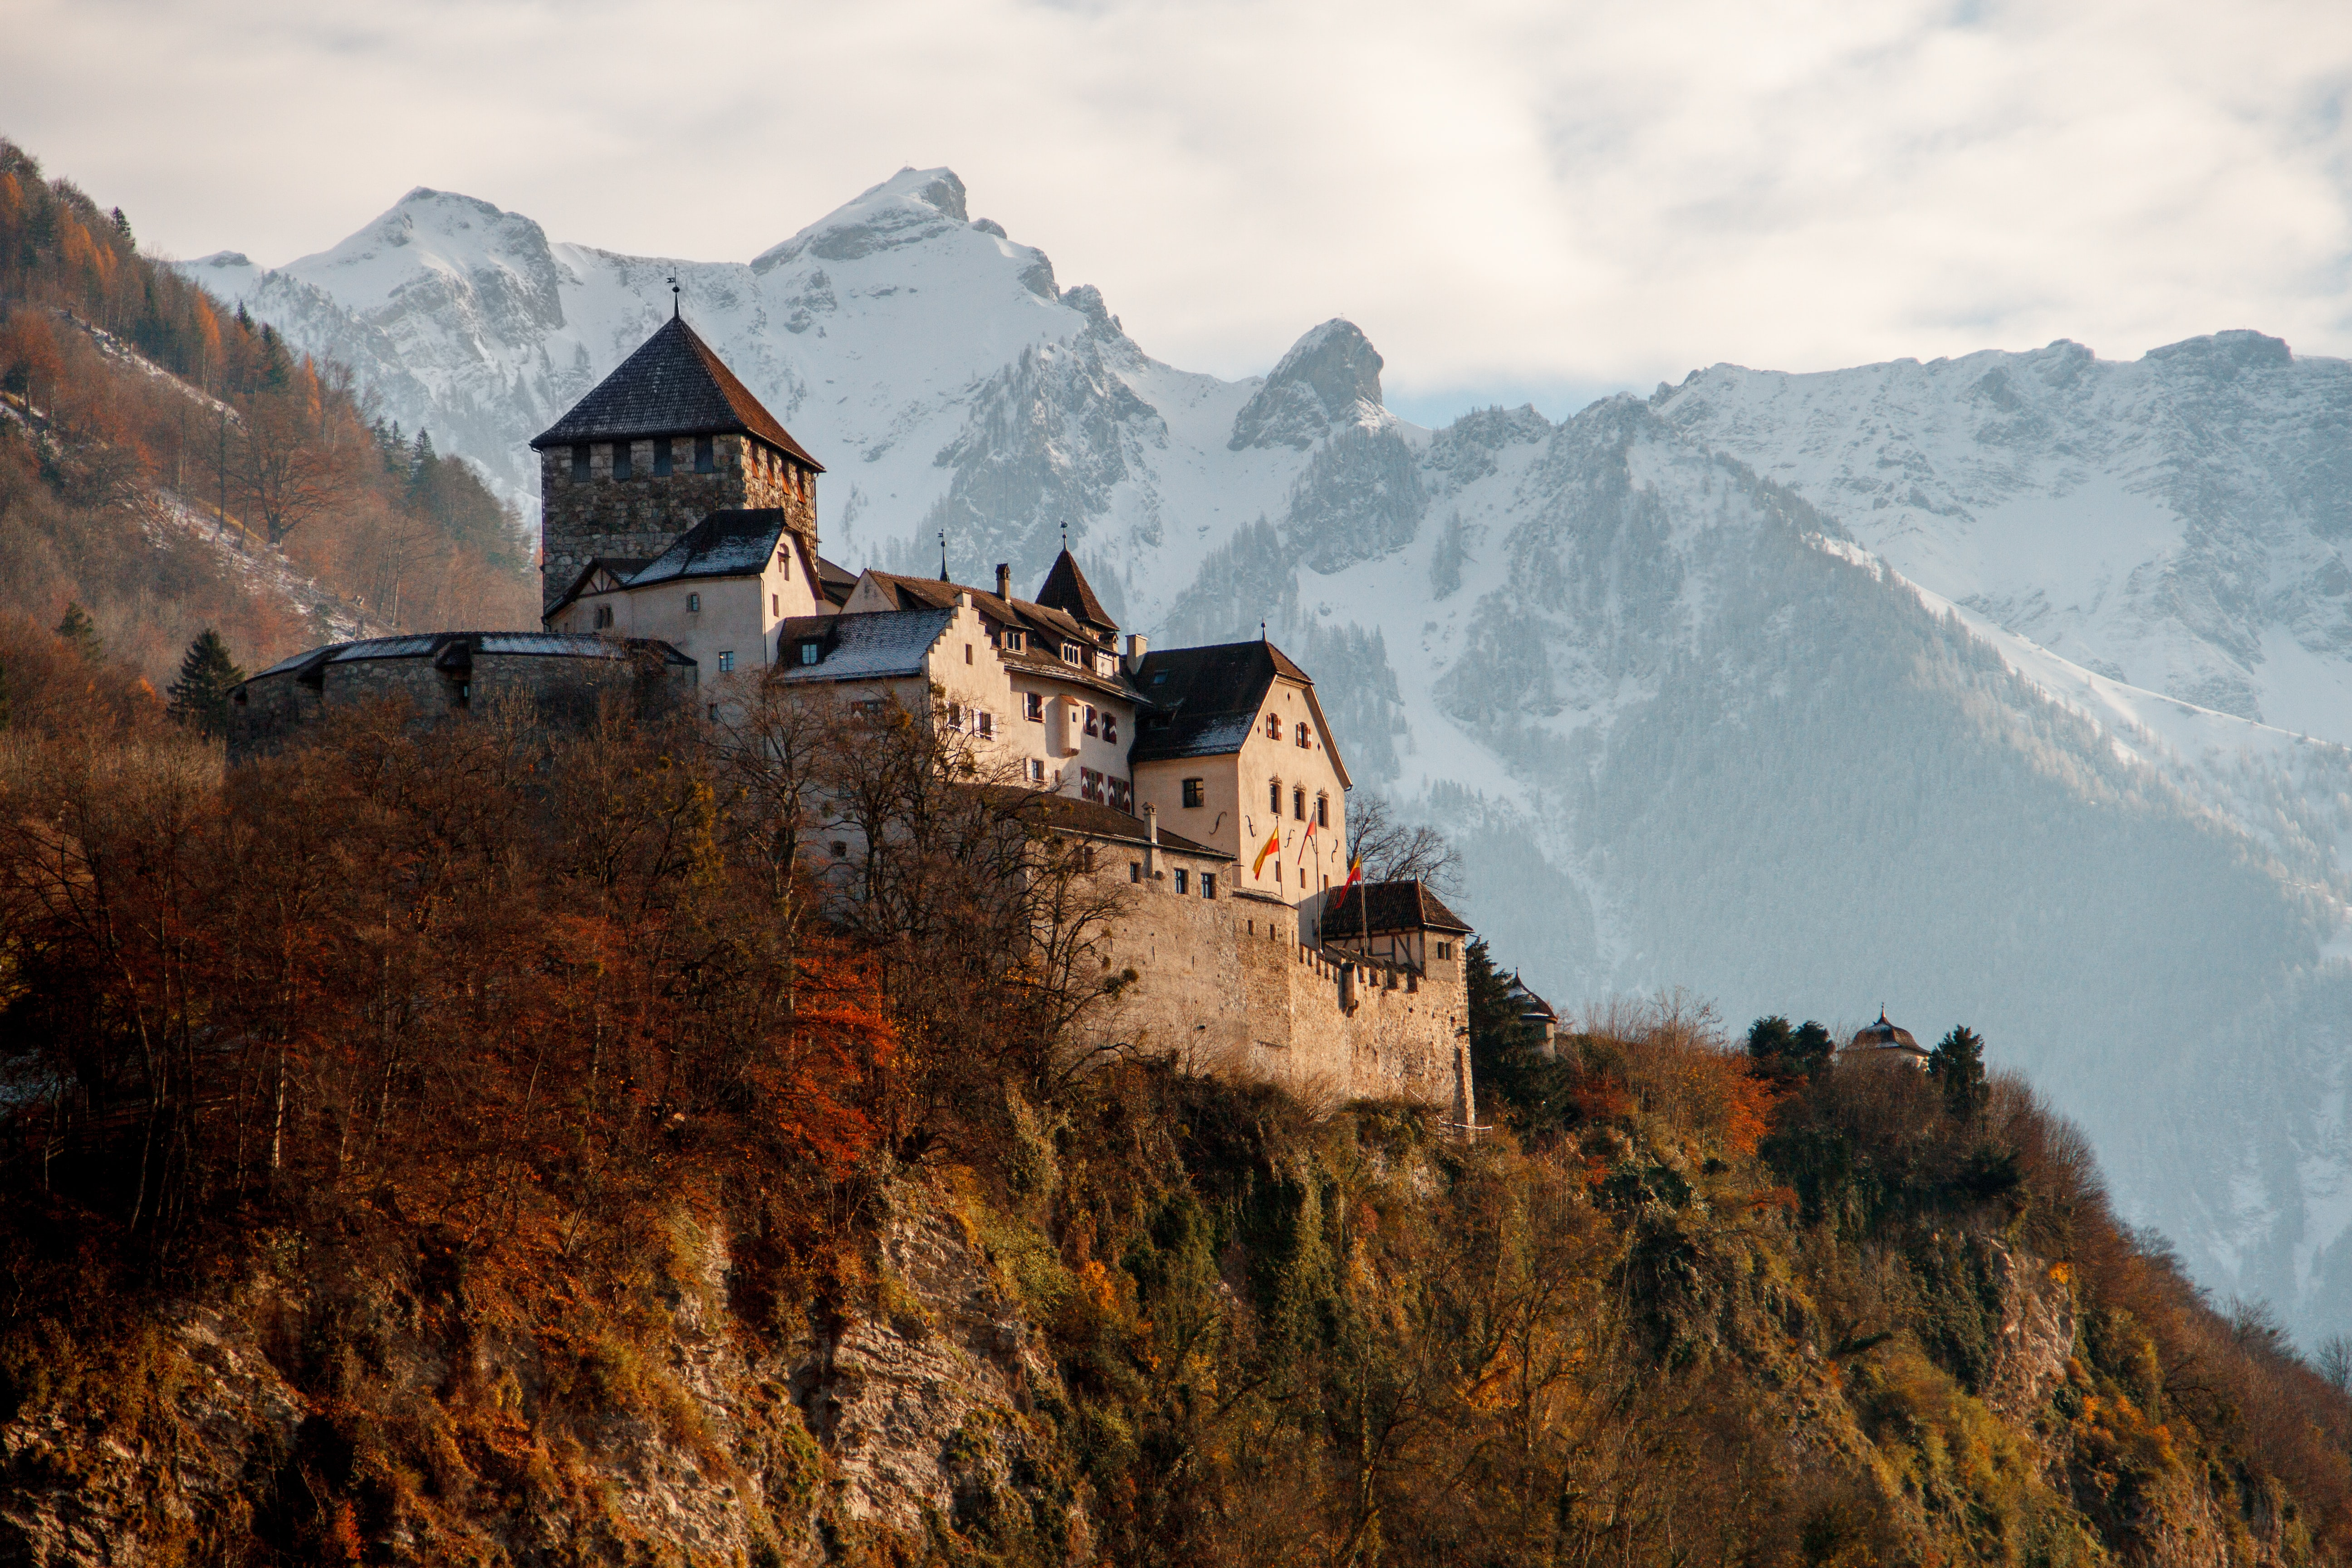 castle on mountain surrounded by trees